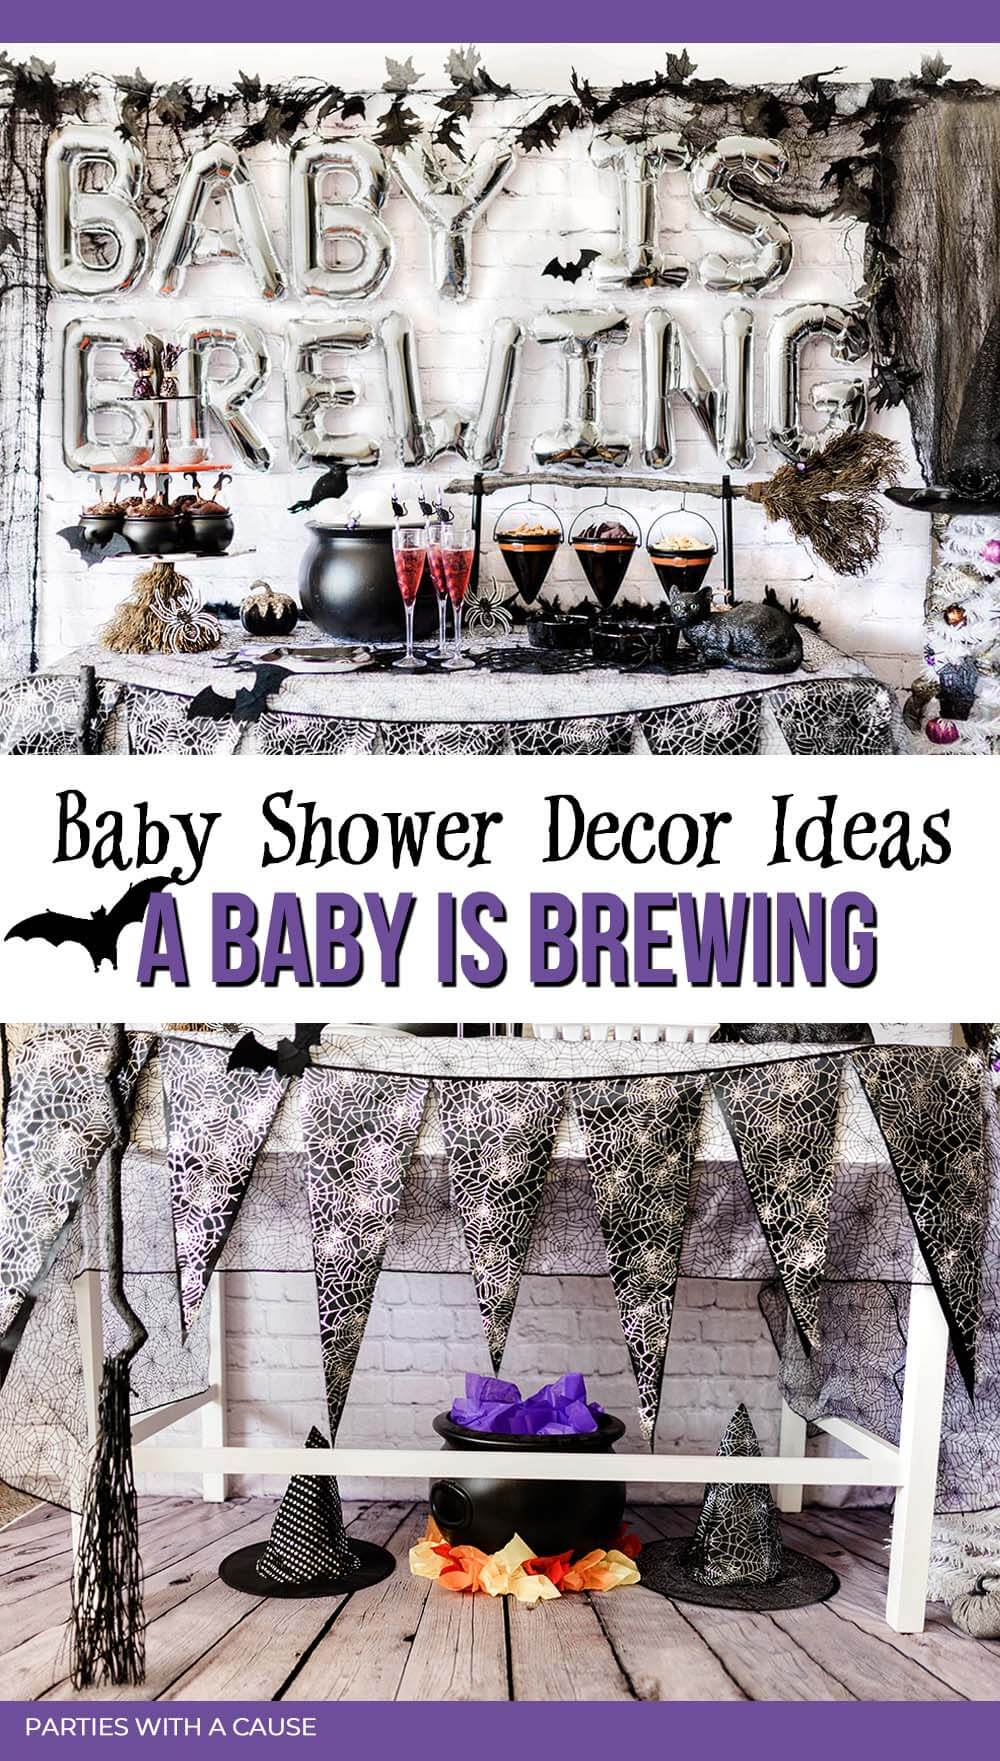 A Baby is Brewing Baby shower decor ideas by Salt Lake Party Stylist